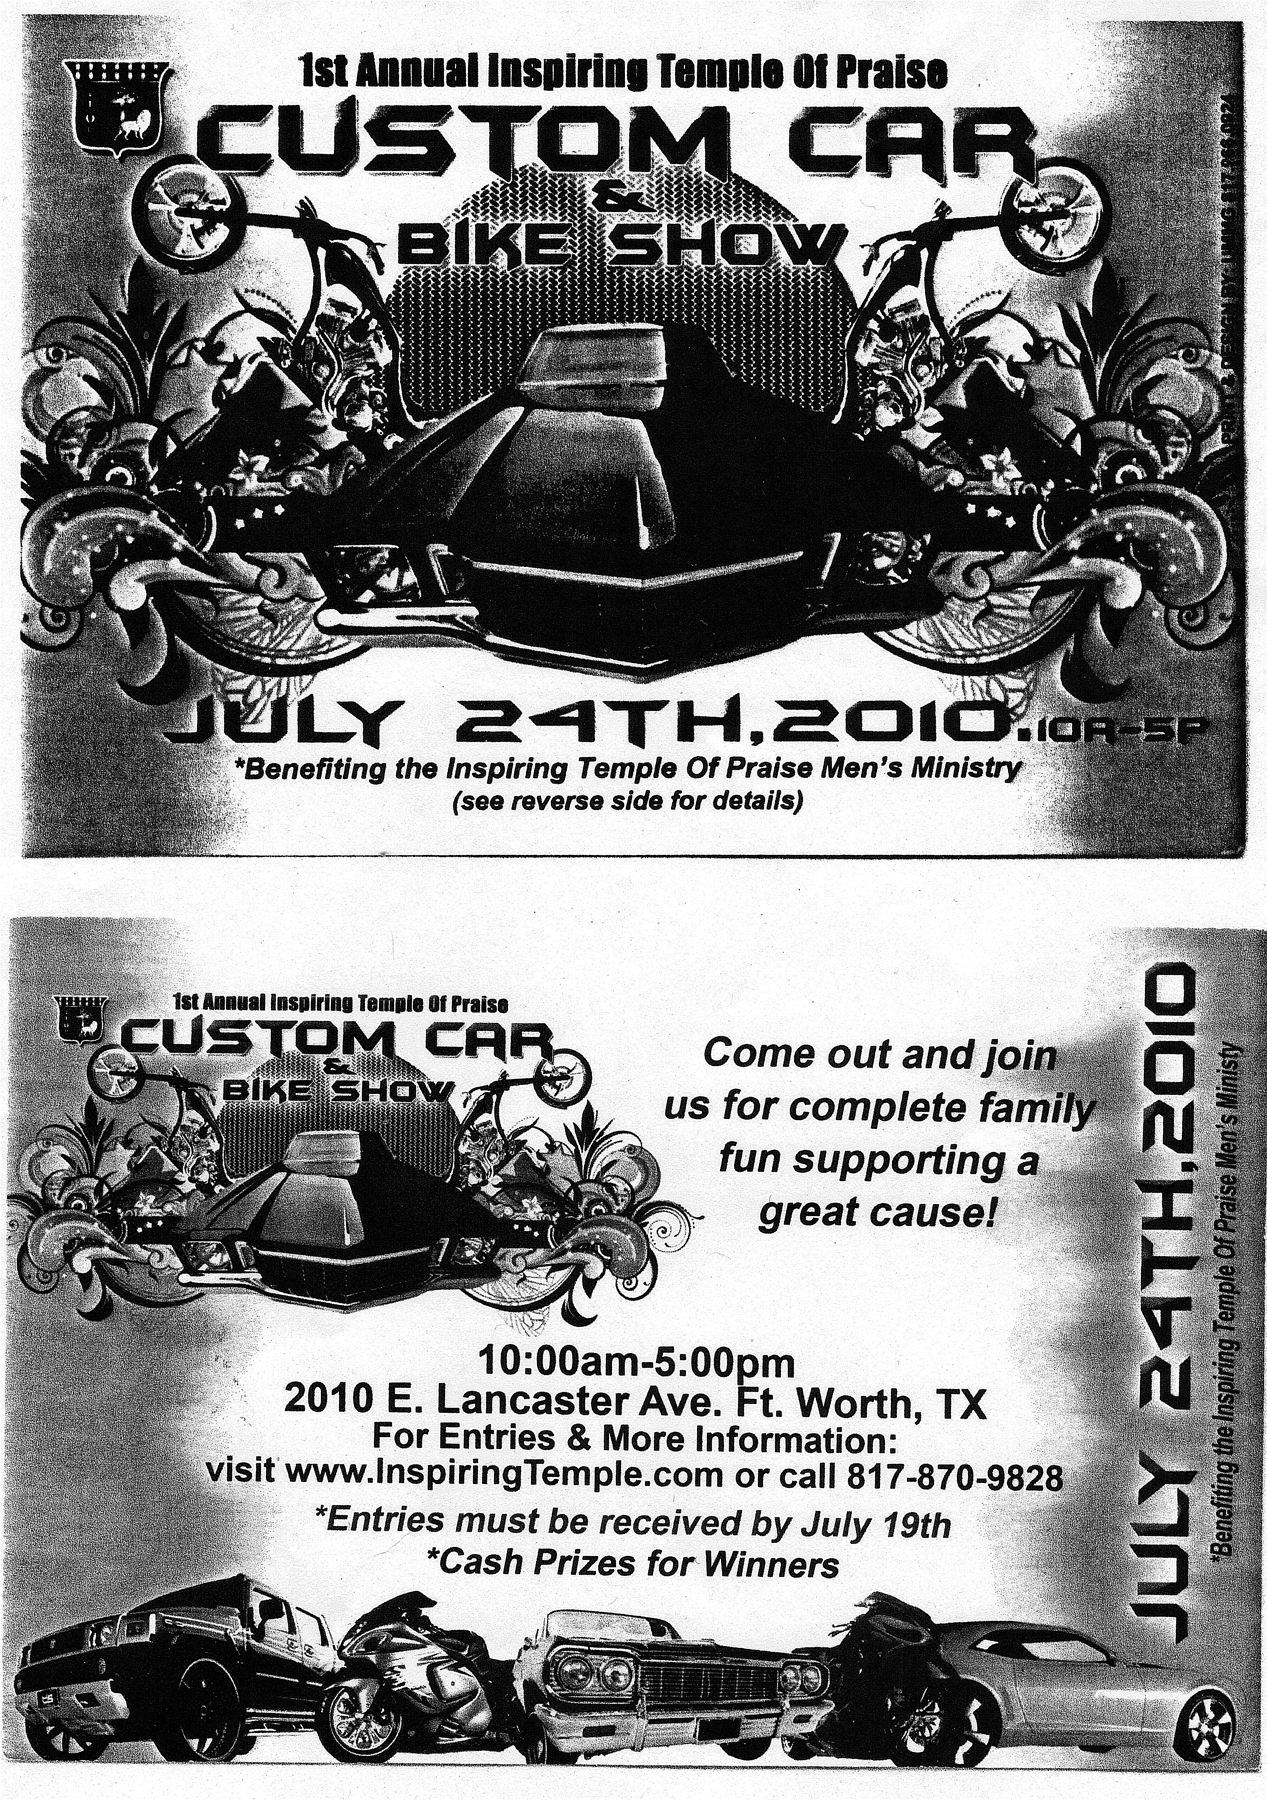 Cowtown Vettes Misc Car Shows - Blank car show flyer